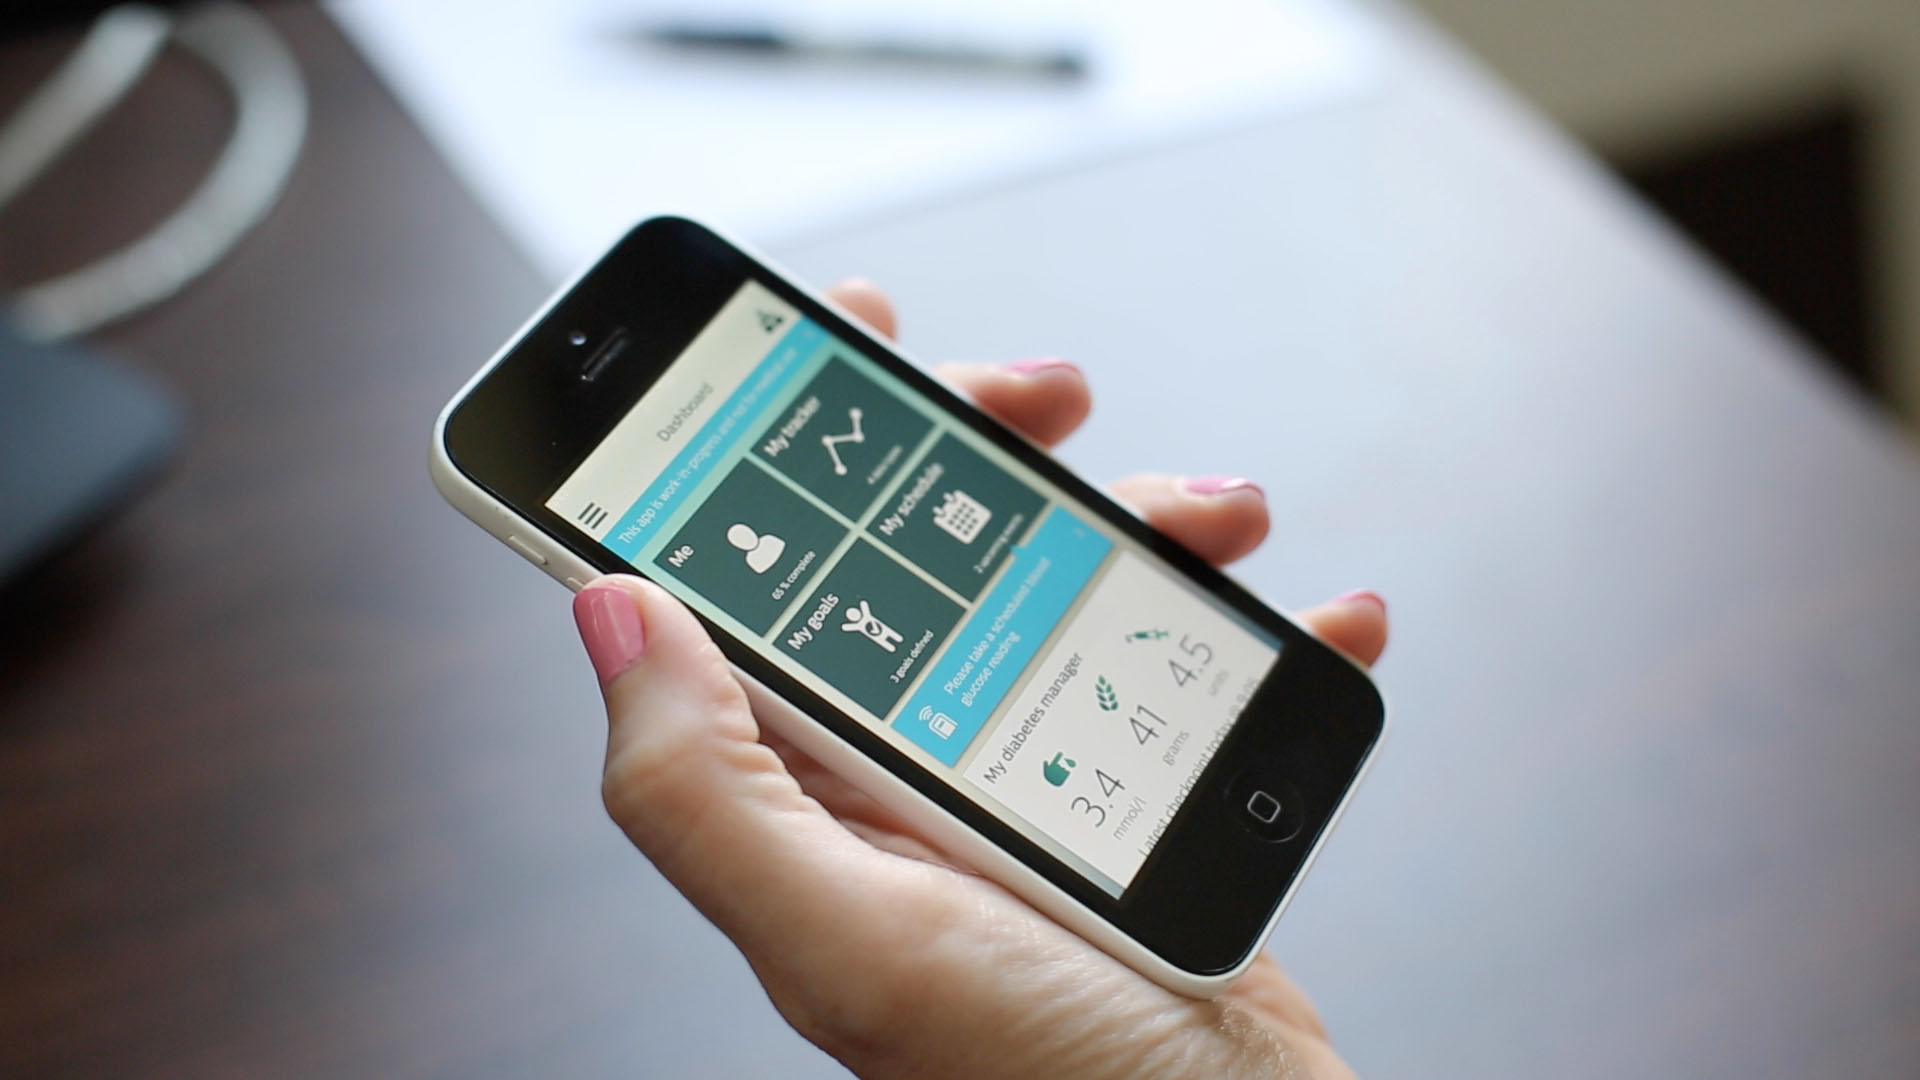 First Diabetes Prototype App With Integrated Online Community